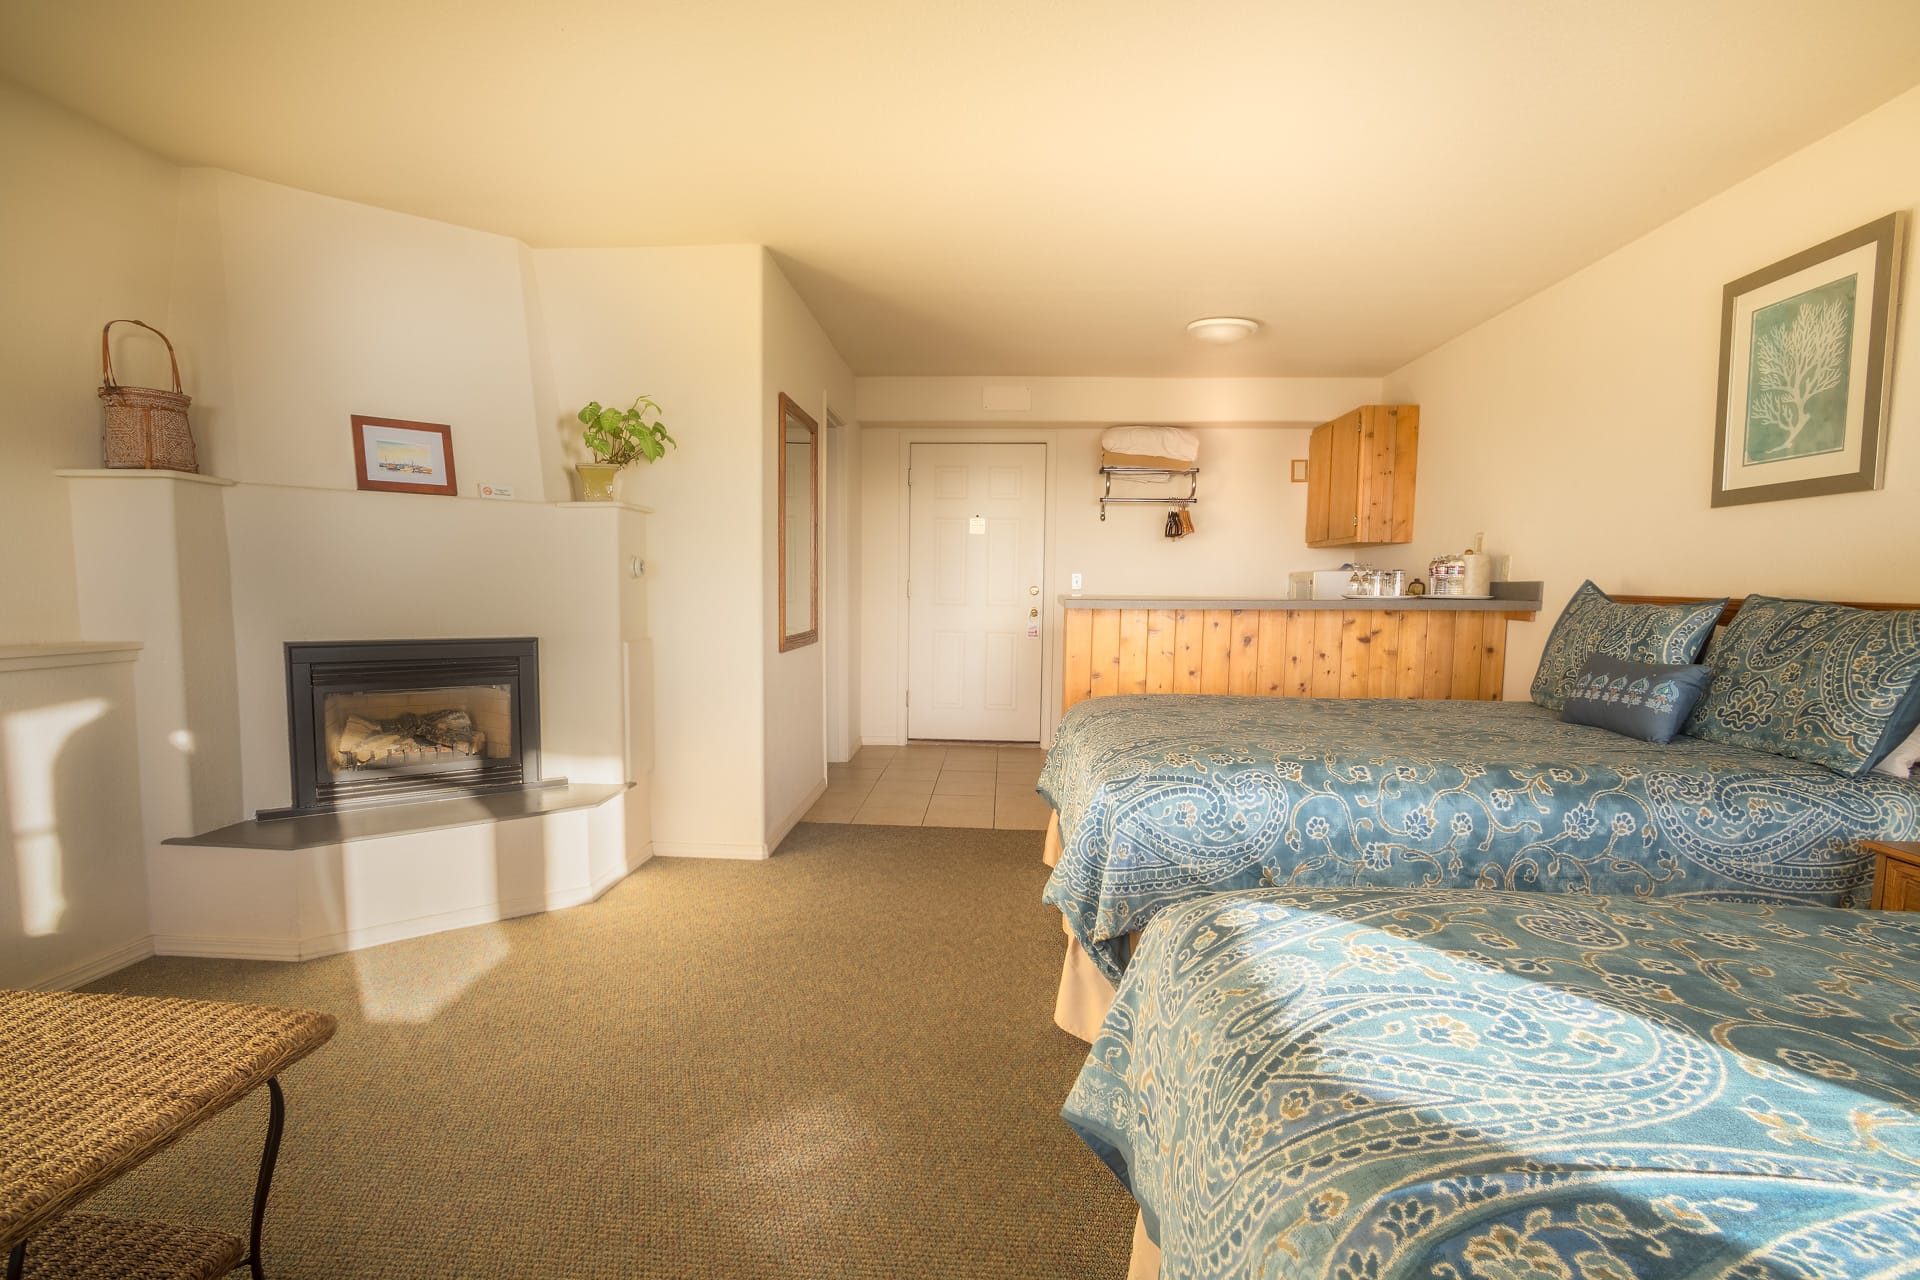 Oceanfront Double Queen Mini Suite hotel room at Inn of the Lost Coast Shelter Cove with two Queen size beds, fireplace, and extended stay kitchenette with bar and bar stools.